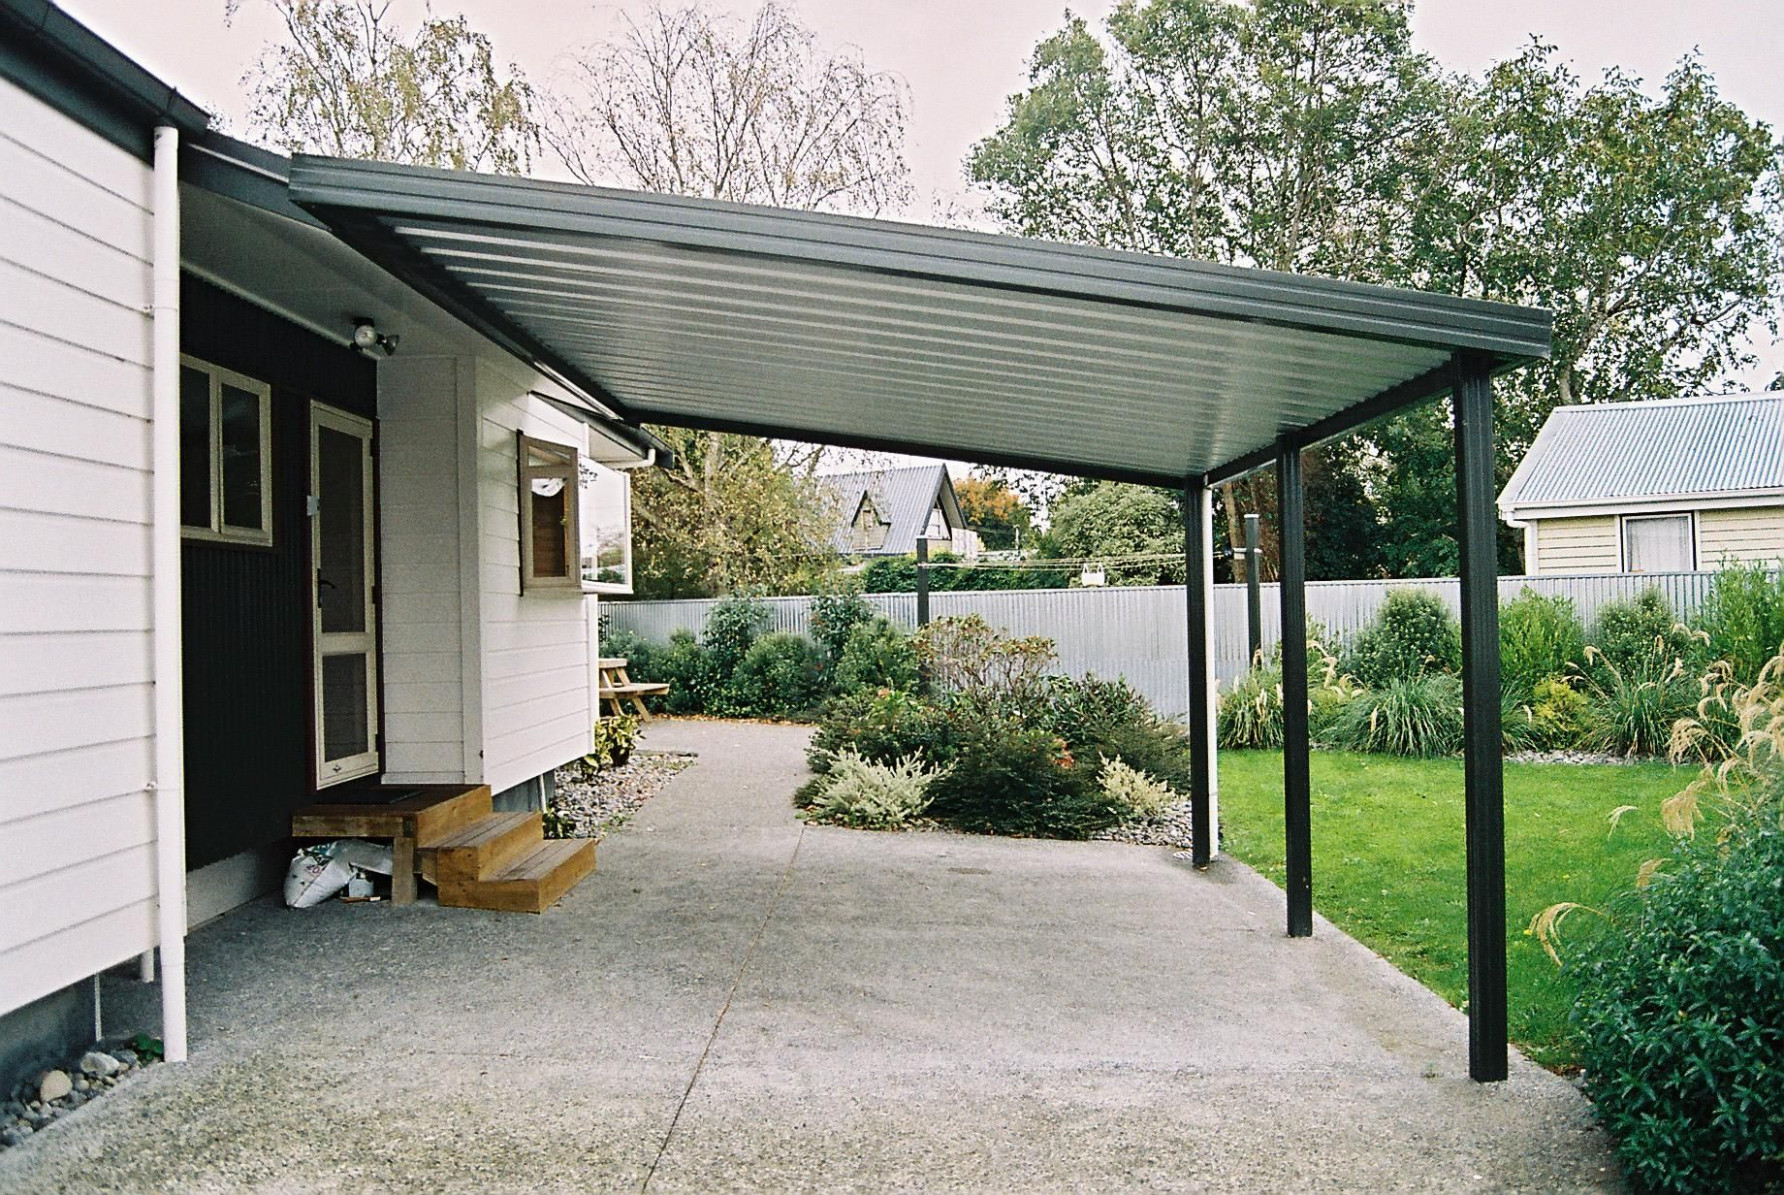 Shed Roof Carport | Ideas For Bennett House In 9 ..